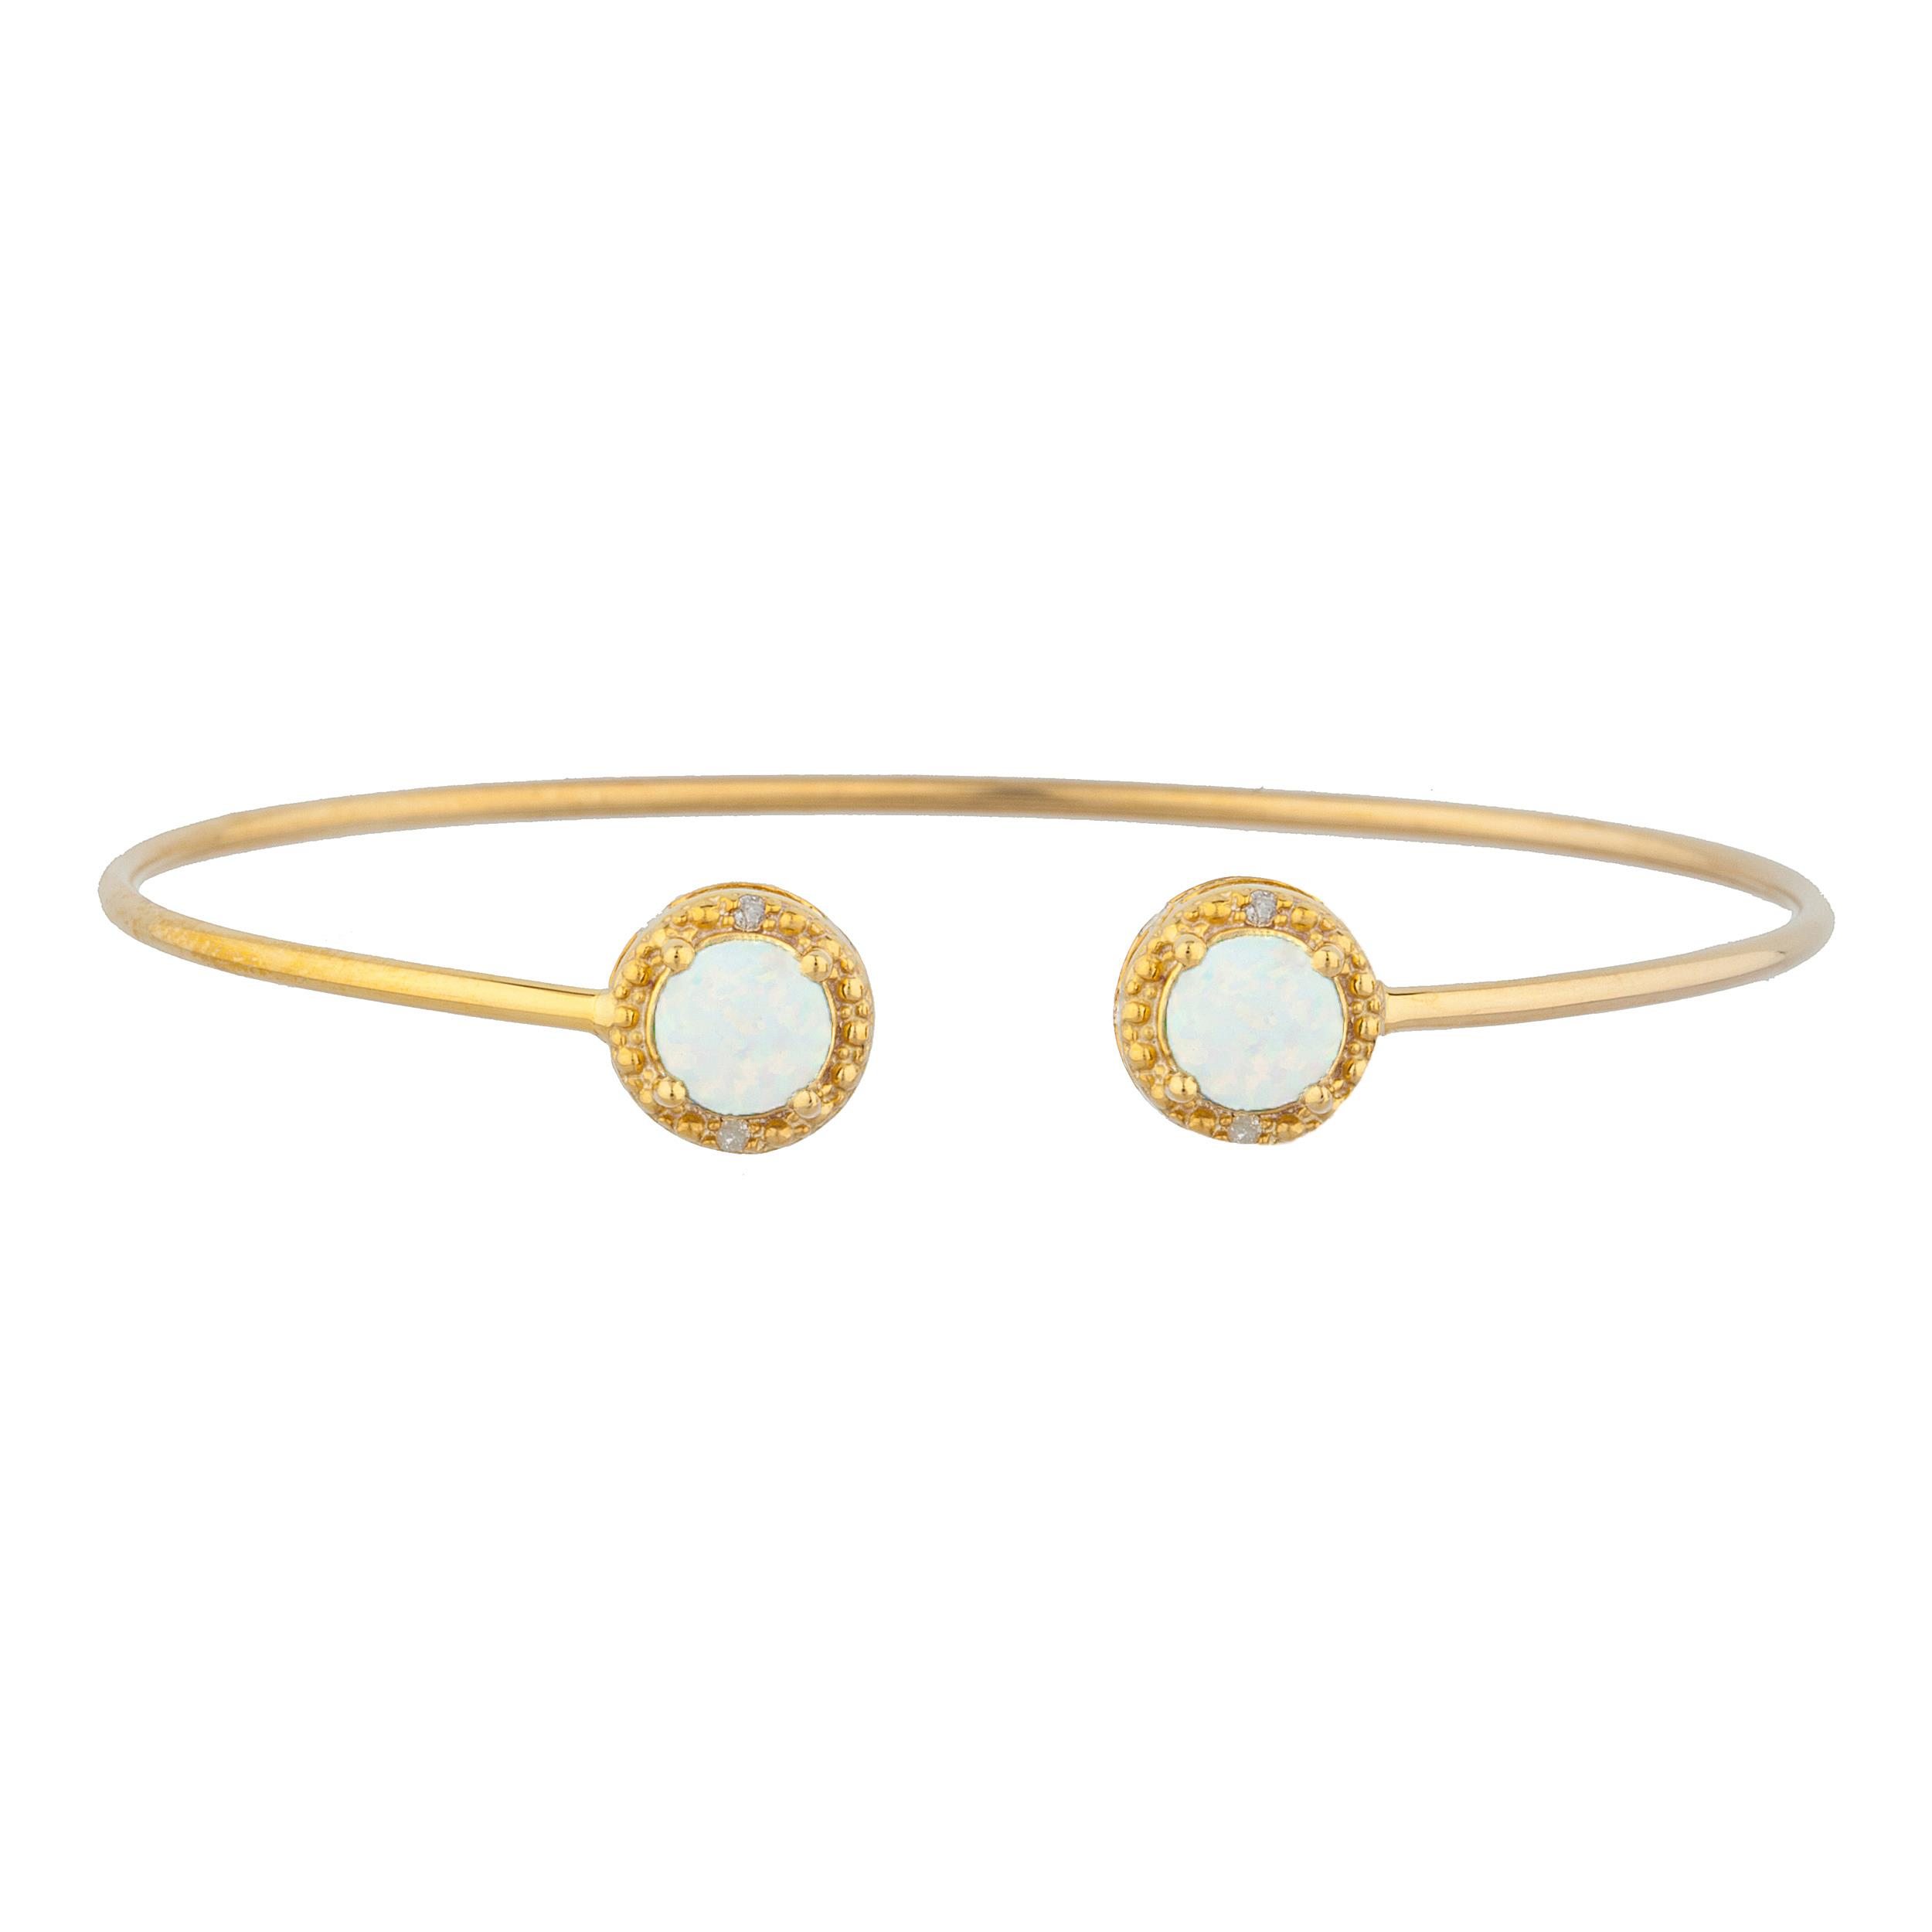 14Kt Yellow Gold Plated Opal & Diamond Round Bangle Bracelet by Elizabeth Jewelry Inc